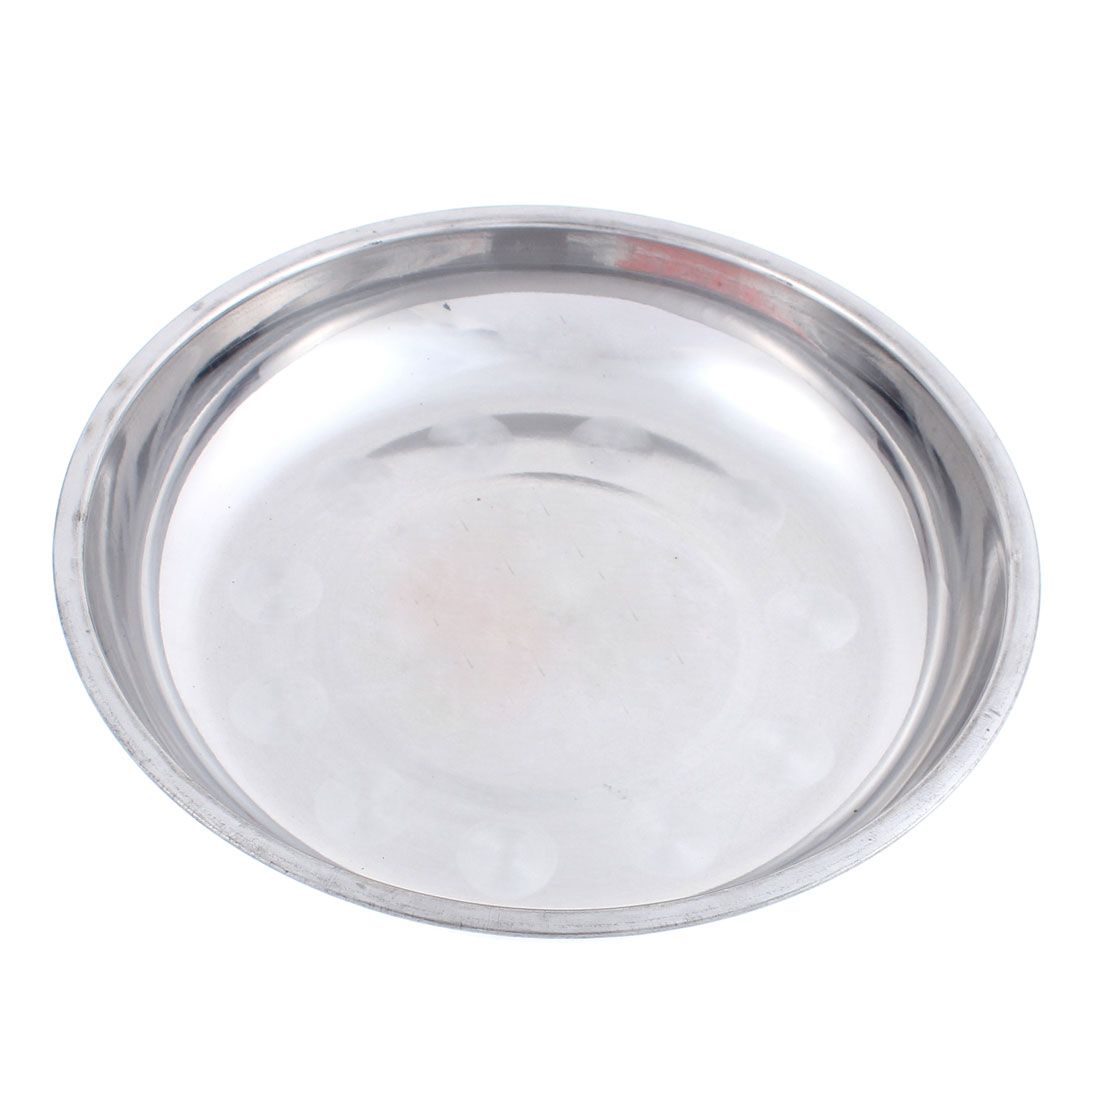 Kitchen Dinner Dish Food Plate Holder Silver Tone 20cm Dia